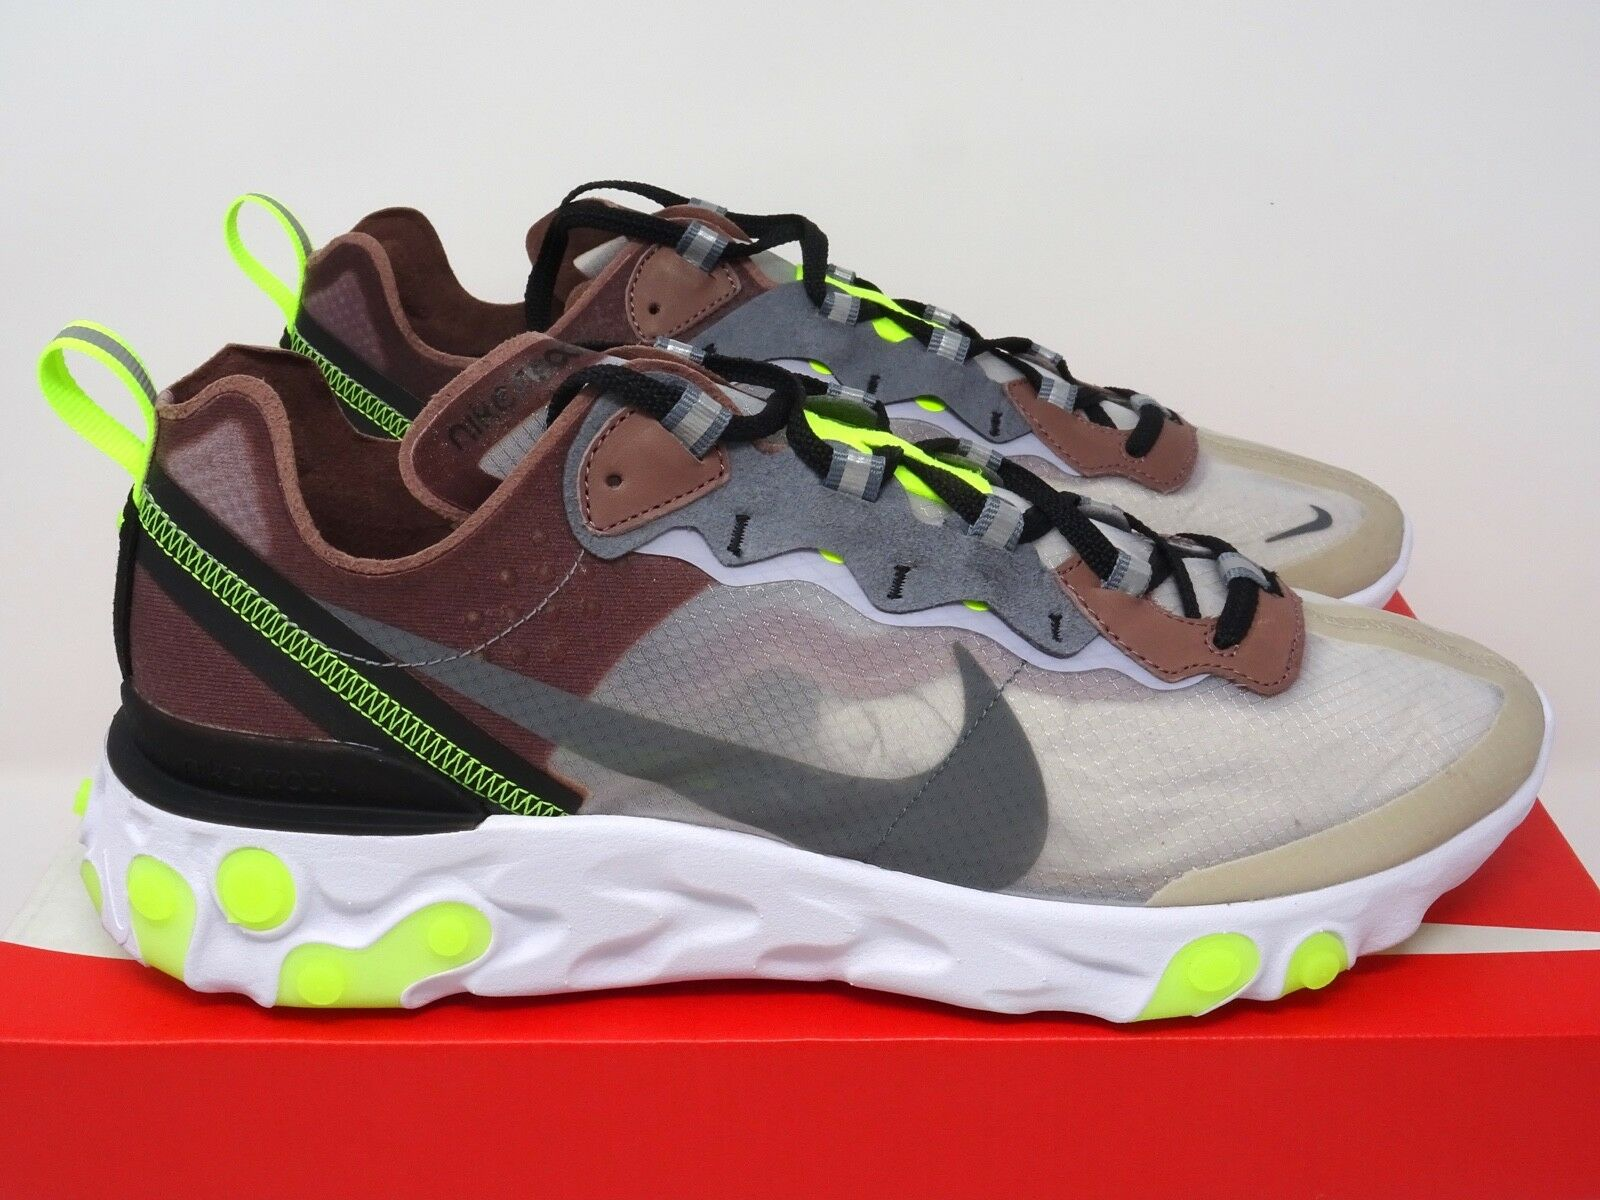 Nike React Element 87 Desert Sand Cool Grey Green UK 5 6 7 8 9 10 11 12 US